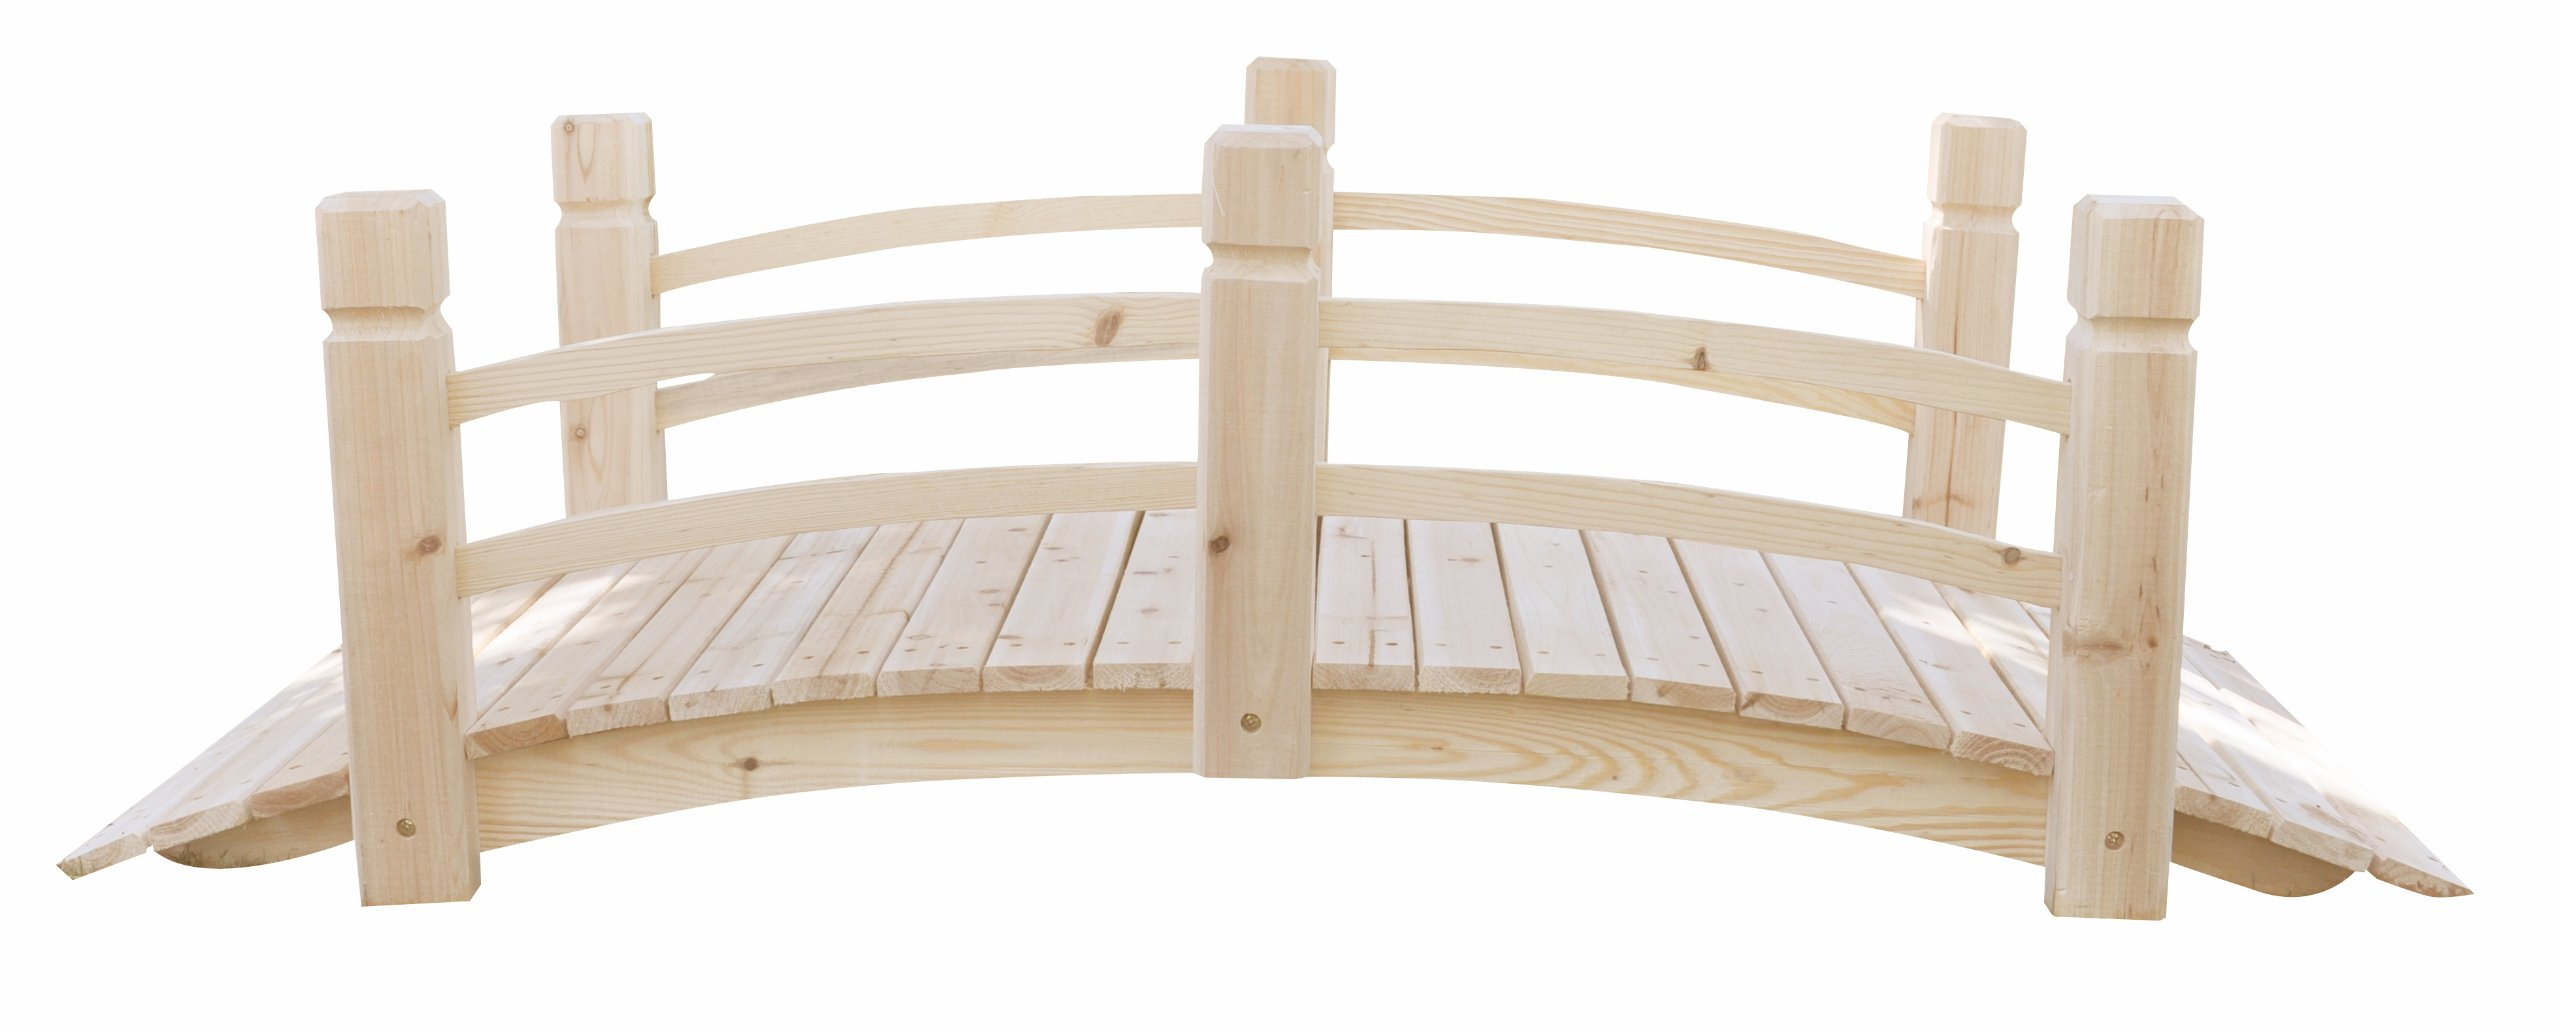 Shine Company 5 Ft. Cedar Garden Bridge, Natural